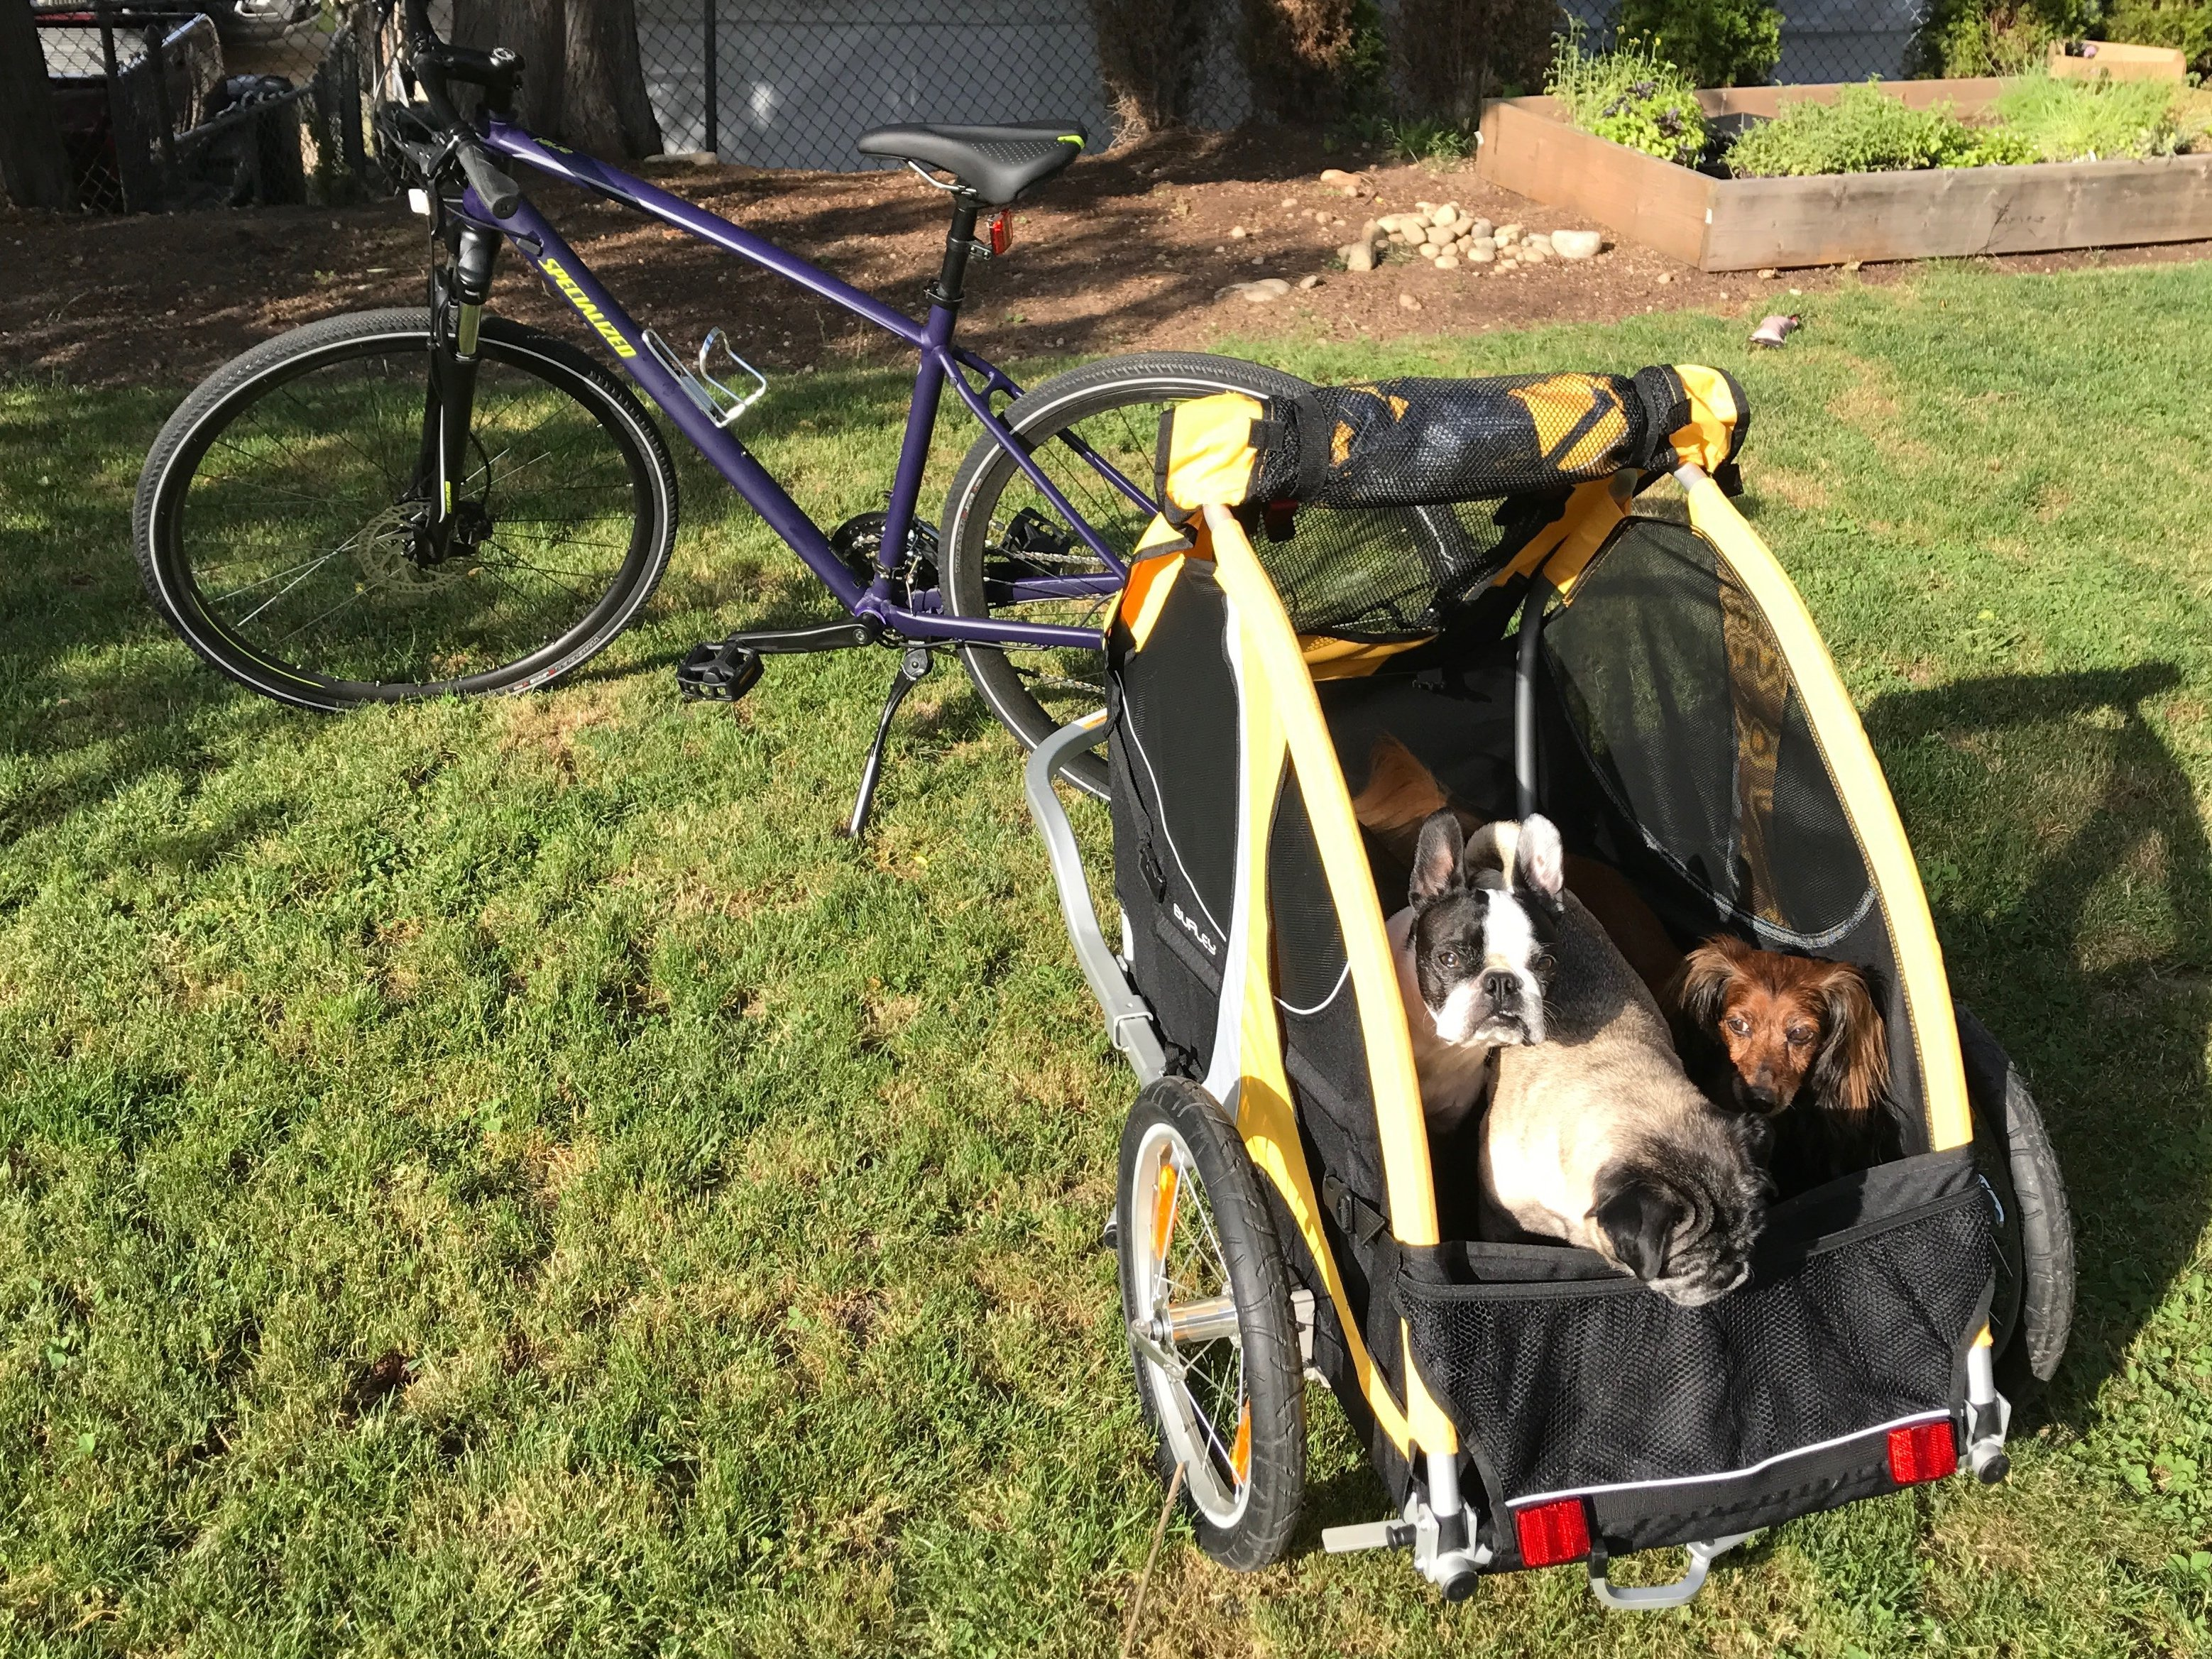 bc95c5a1122 This Primo Dog Bike Trailer Will Keep You Adventuring All Summer Long   The  Dog People by Rover.com